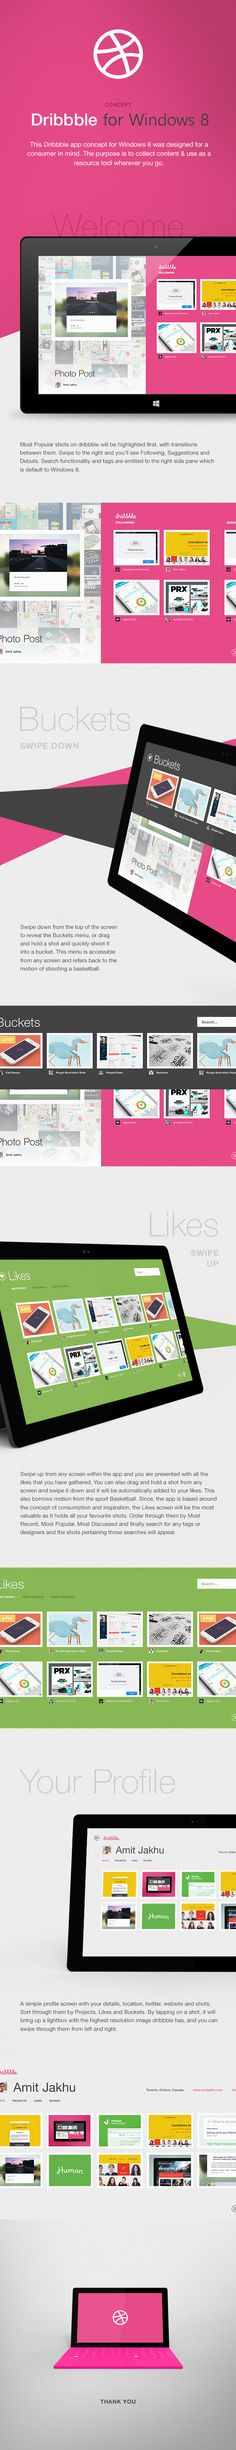 Dribbble for Windows 8 (Concept) by Amit Jakhu